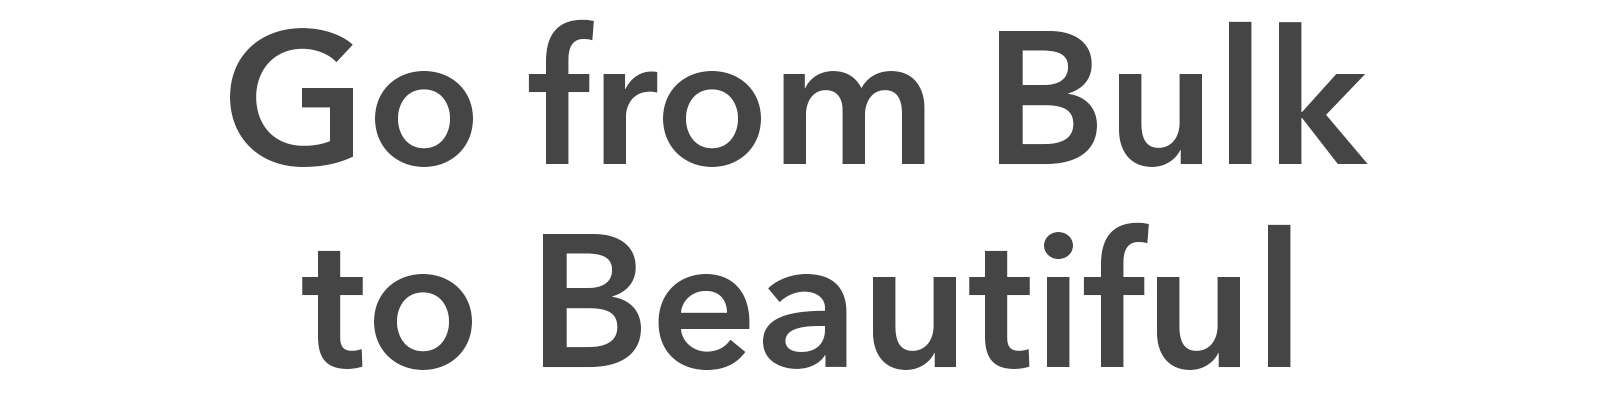 Blog Go From Bulk to Beautiful